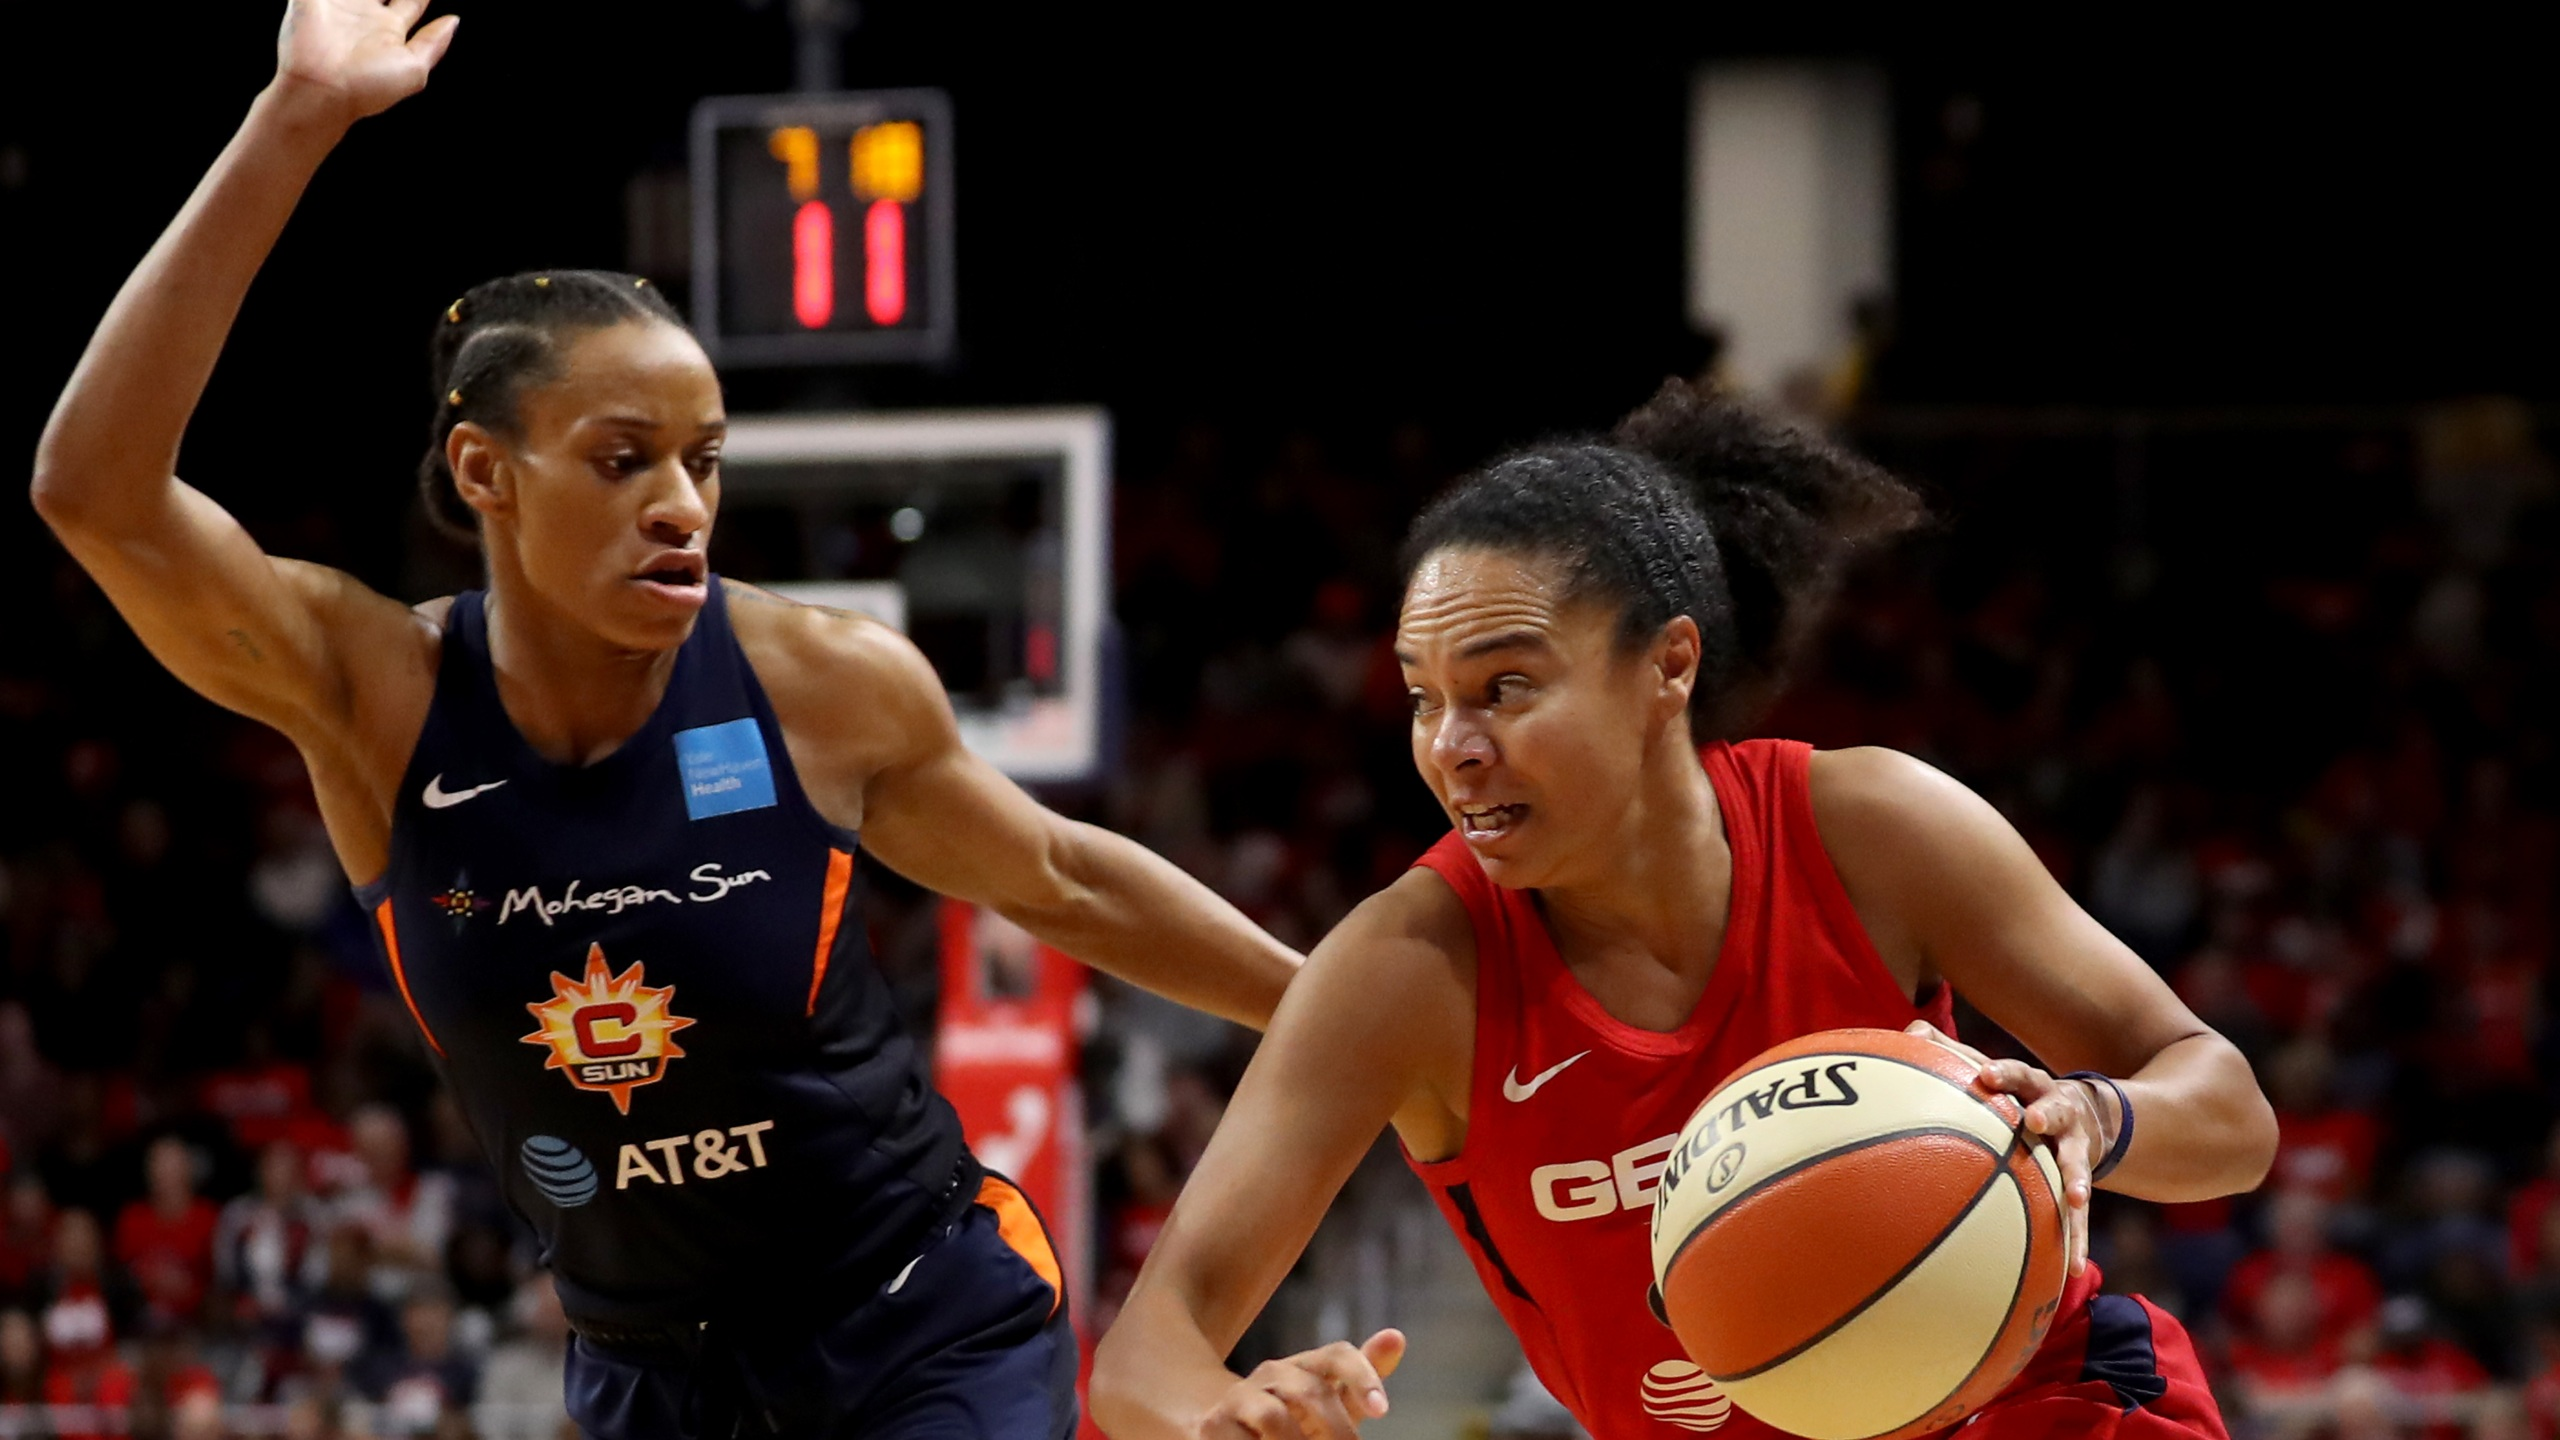 Kristi Toliver of Washington Mystics drives against Jasmine Thomas of Connecticut Sun during Game Five of the 2019 WNBA Finals at St Elizabeths East Entertainment & Sports Arena on October 10, 2019, in Washington, DC. (Rob Carr/Getty Images)